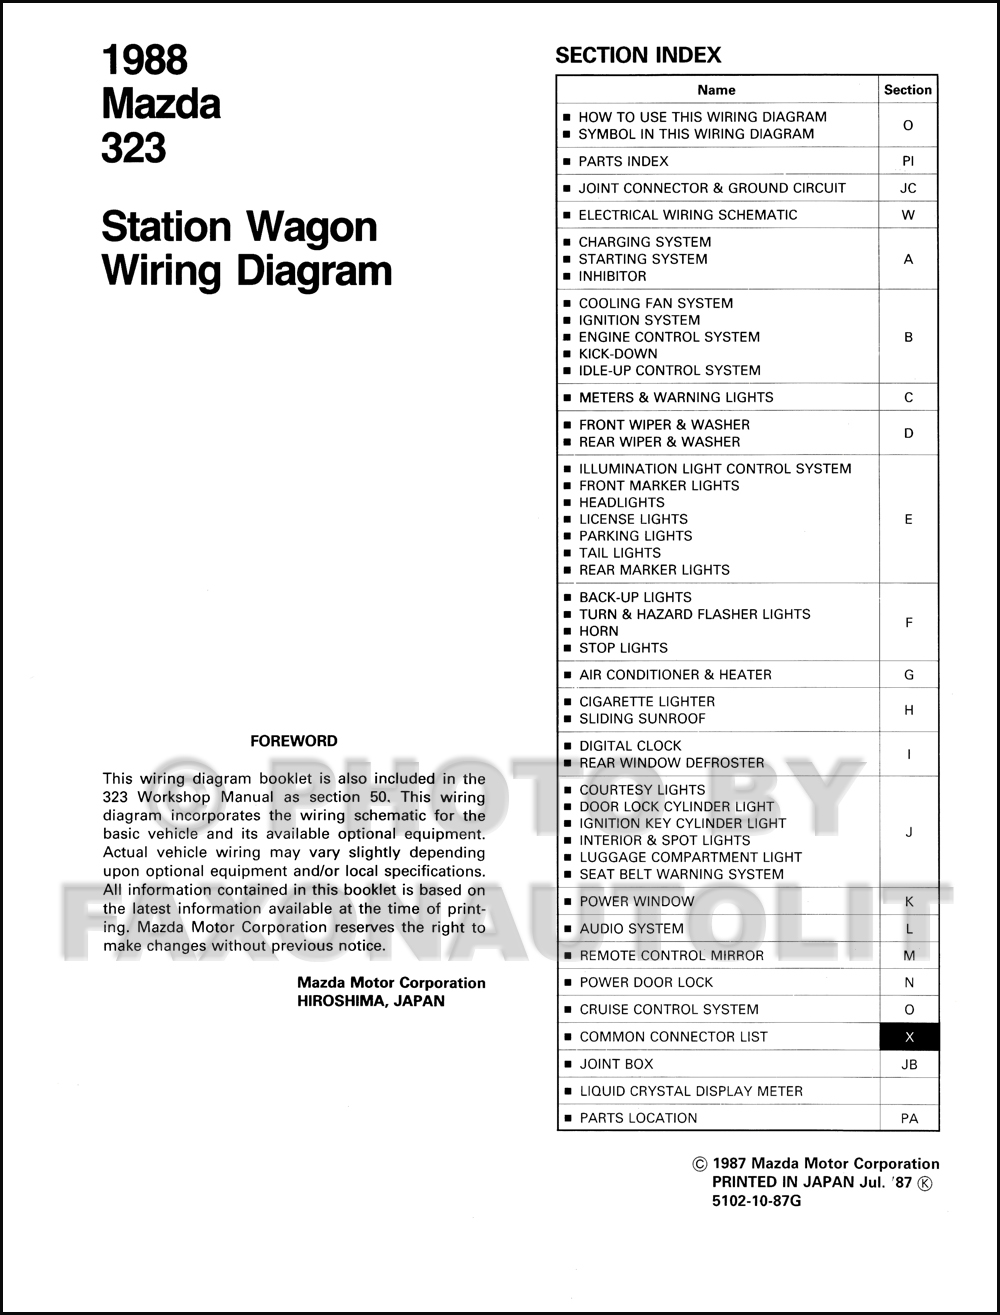 1988 Mazda 323 Station Wagon Wiring Diagram Manual Original 3 Door Click On Thumbnail To Zoom